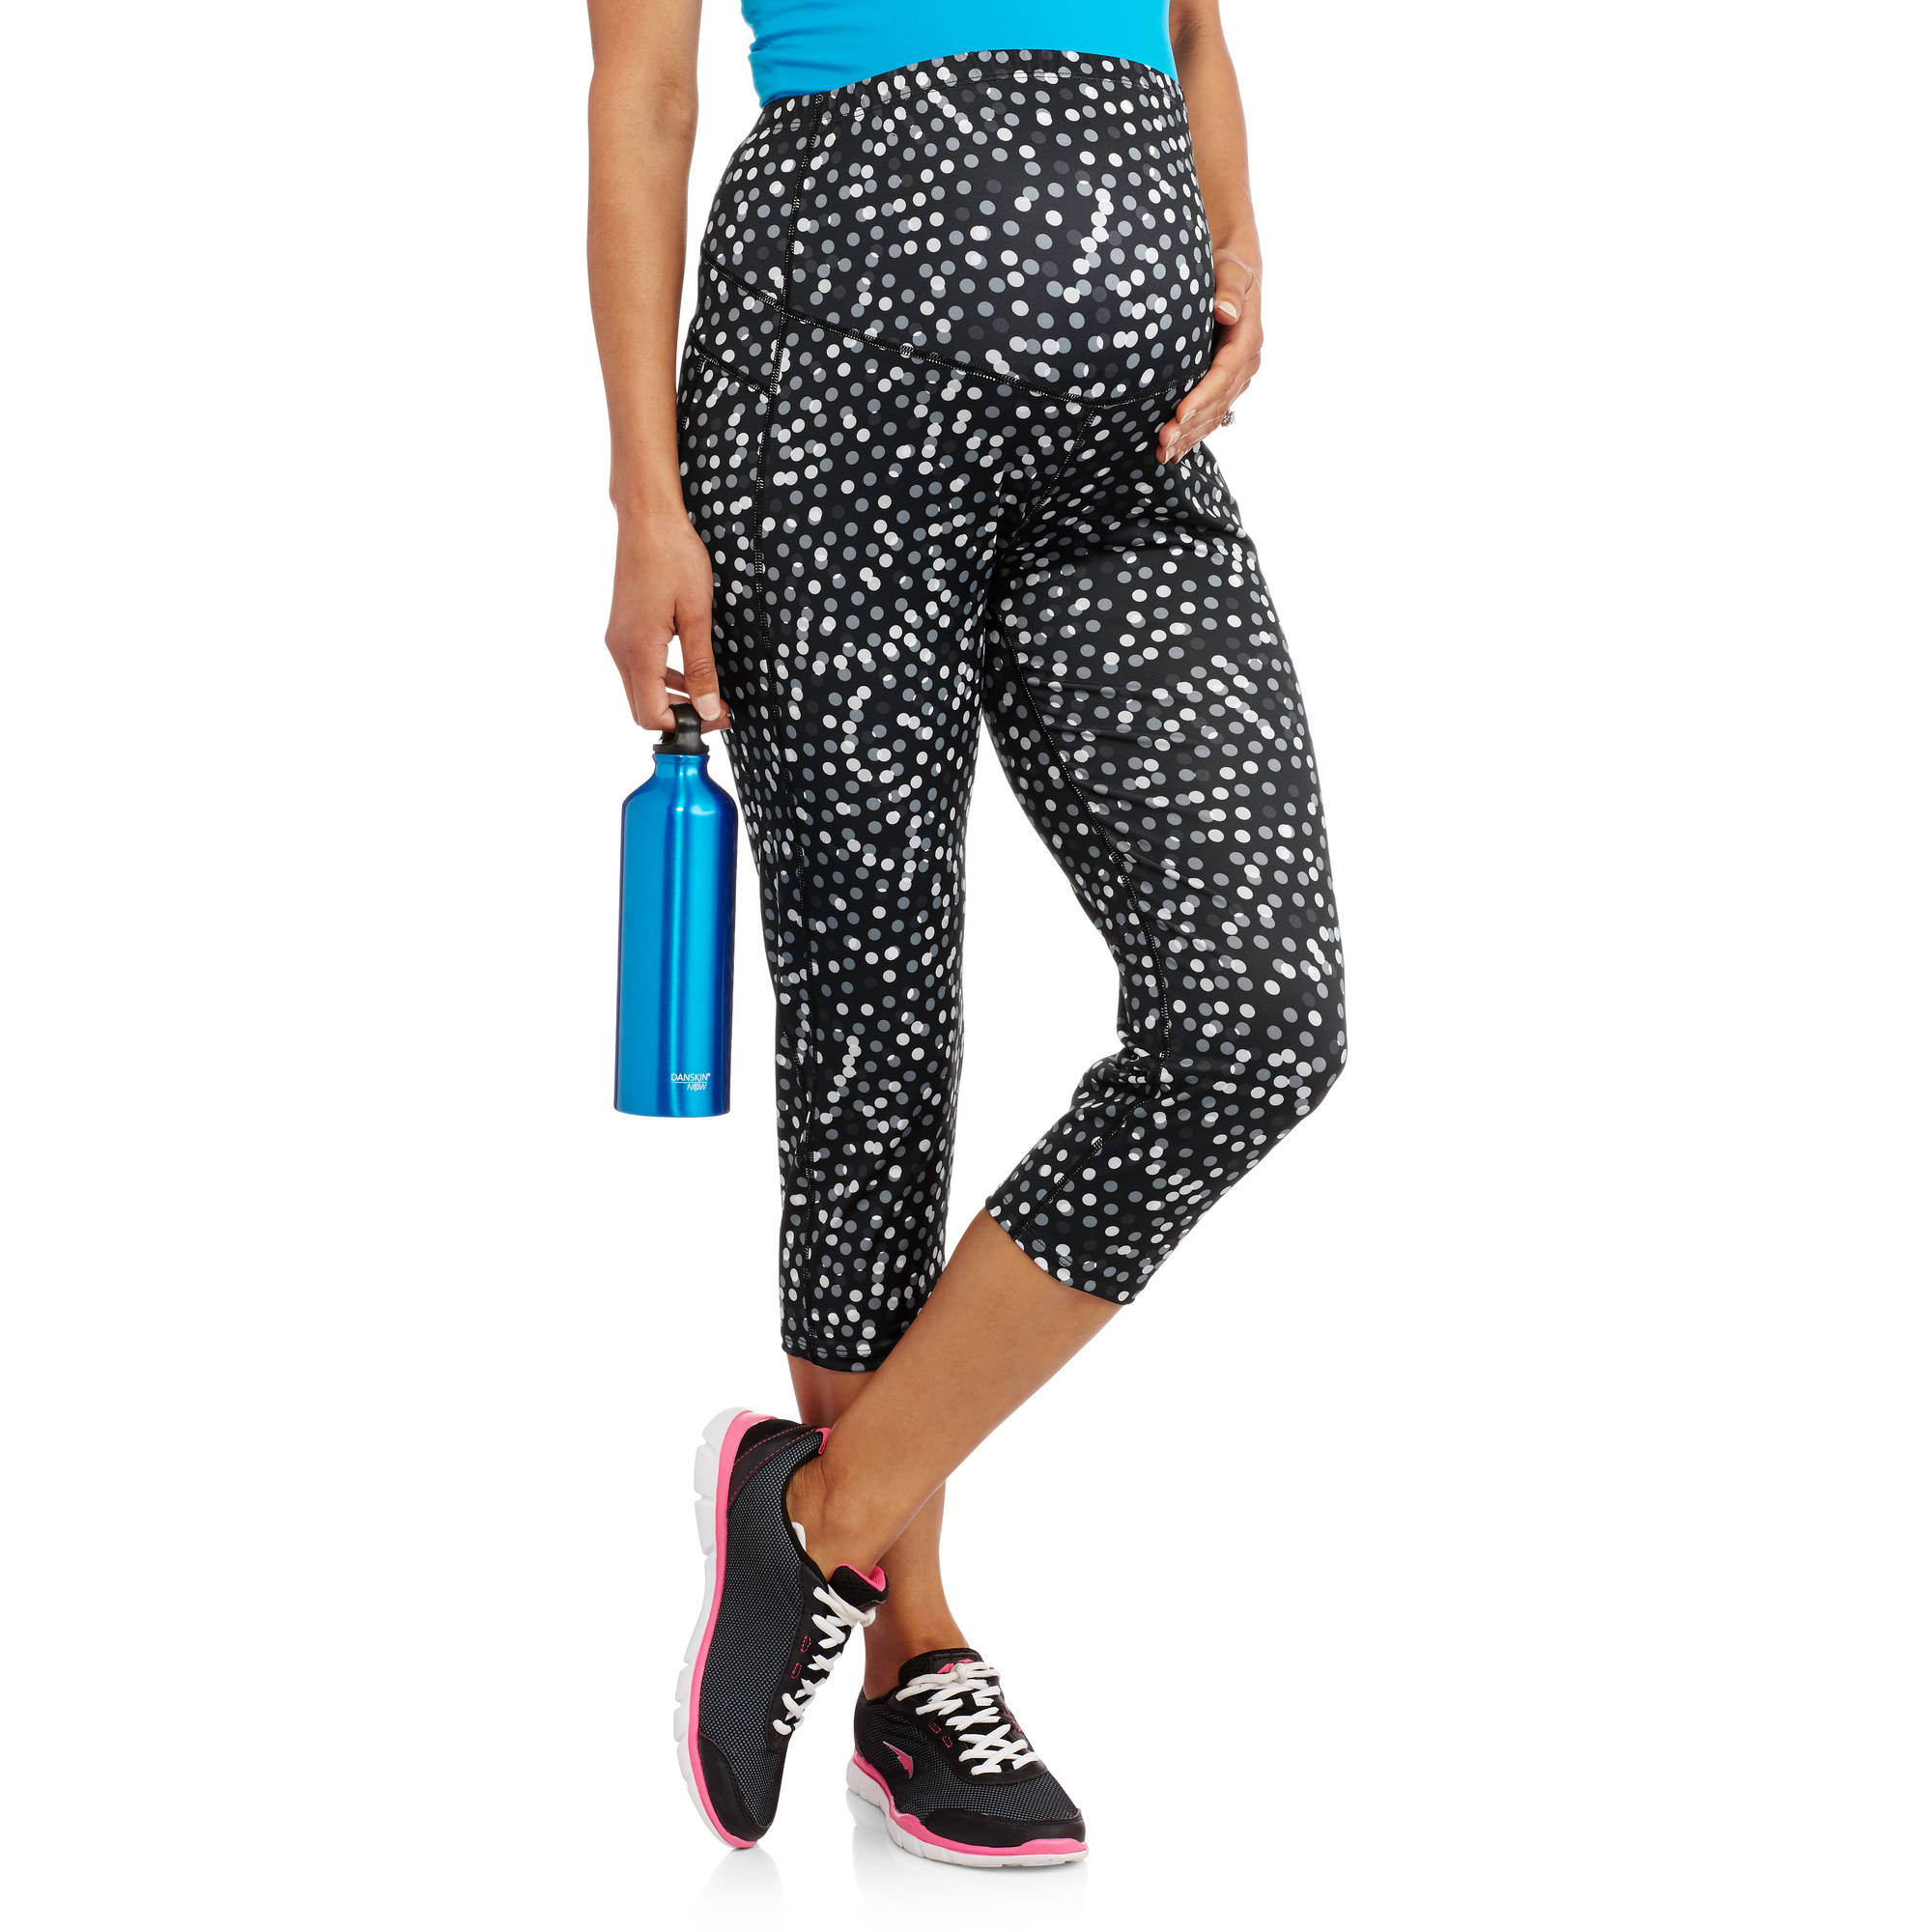 Nurture by Lamaze Maternity Full Panel Workout Capris